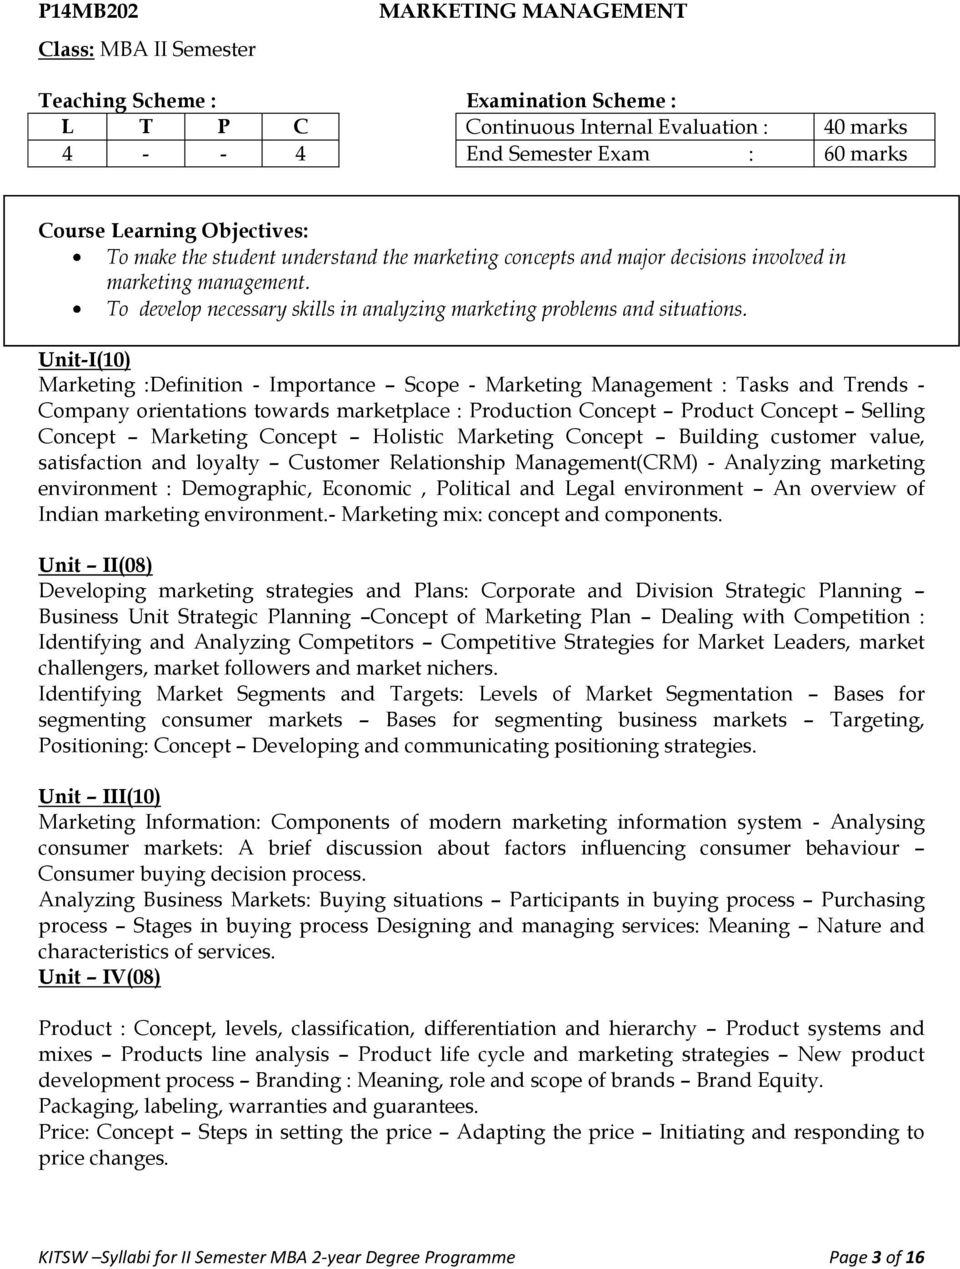 Unit-I(10) Marketing :Definition - Importance Scope - Marketing Management : Tasks and Trends - Company orientations towards marketplace : Production Concept Product Concept Selling Concept Marketing